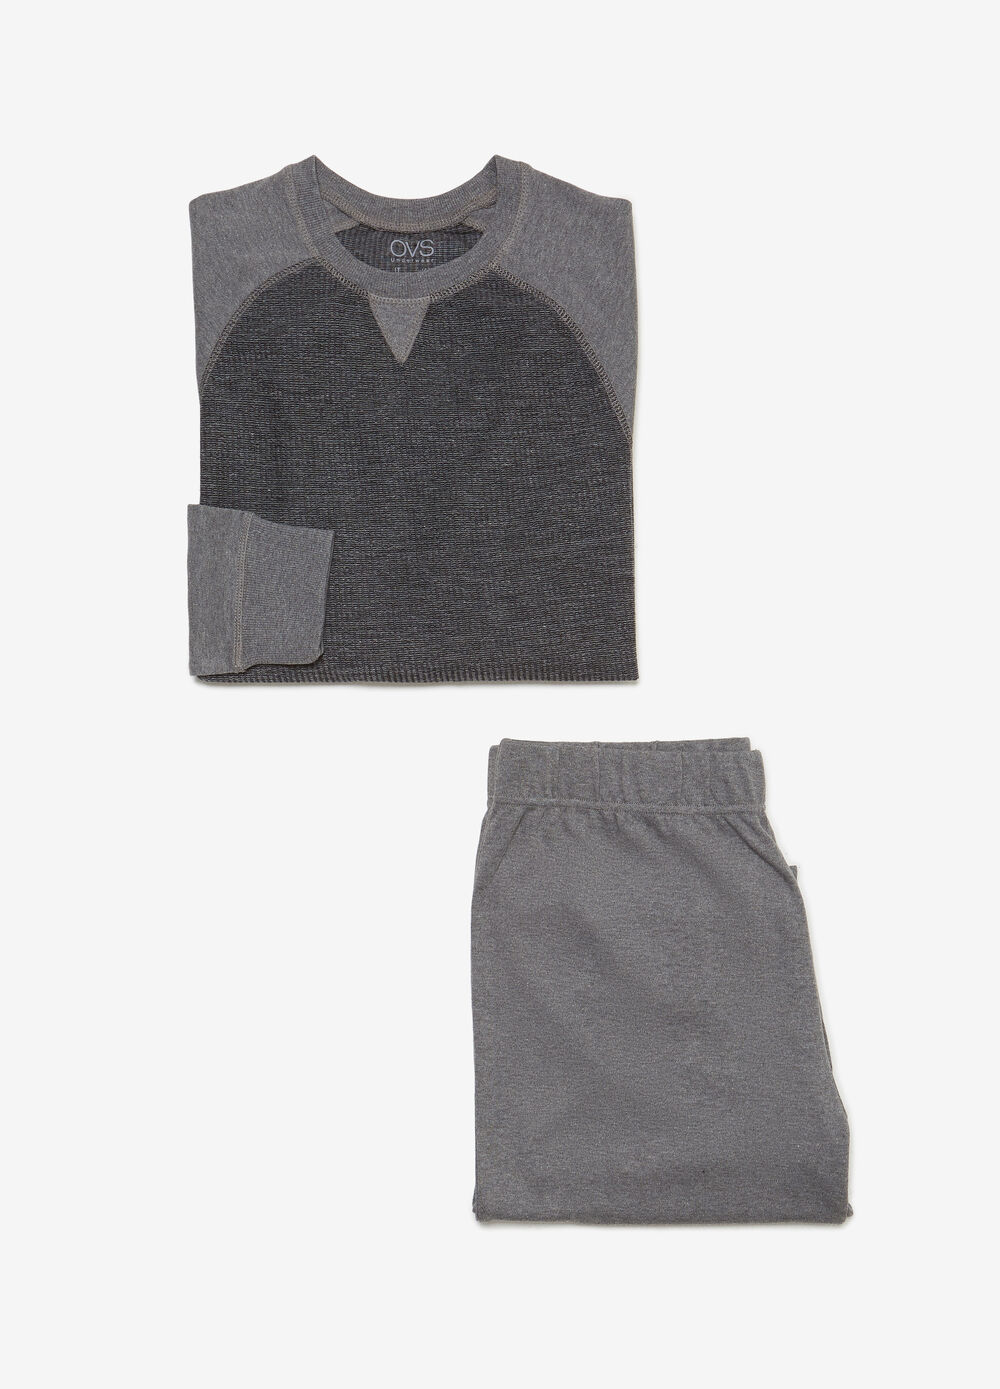 Solid colour heavy pyjamas with textured fabric